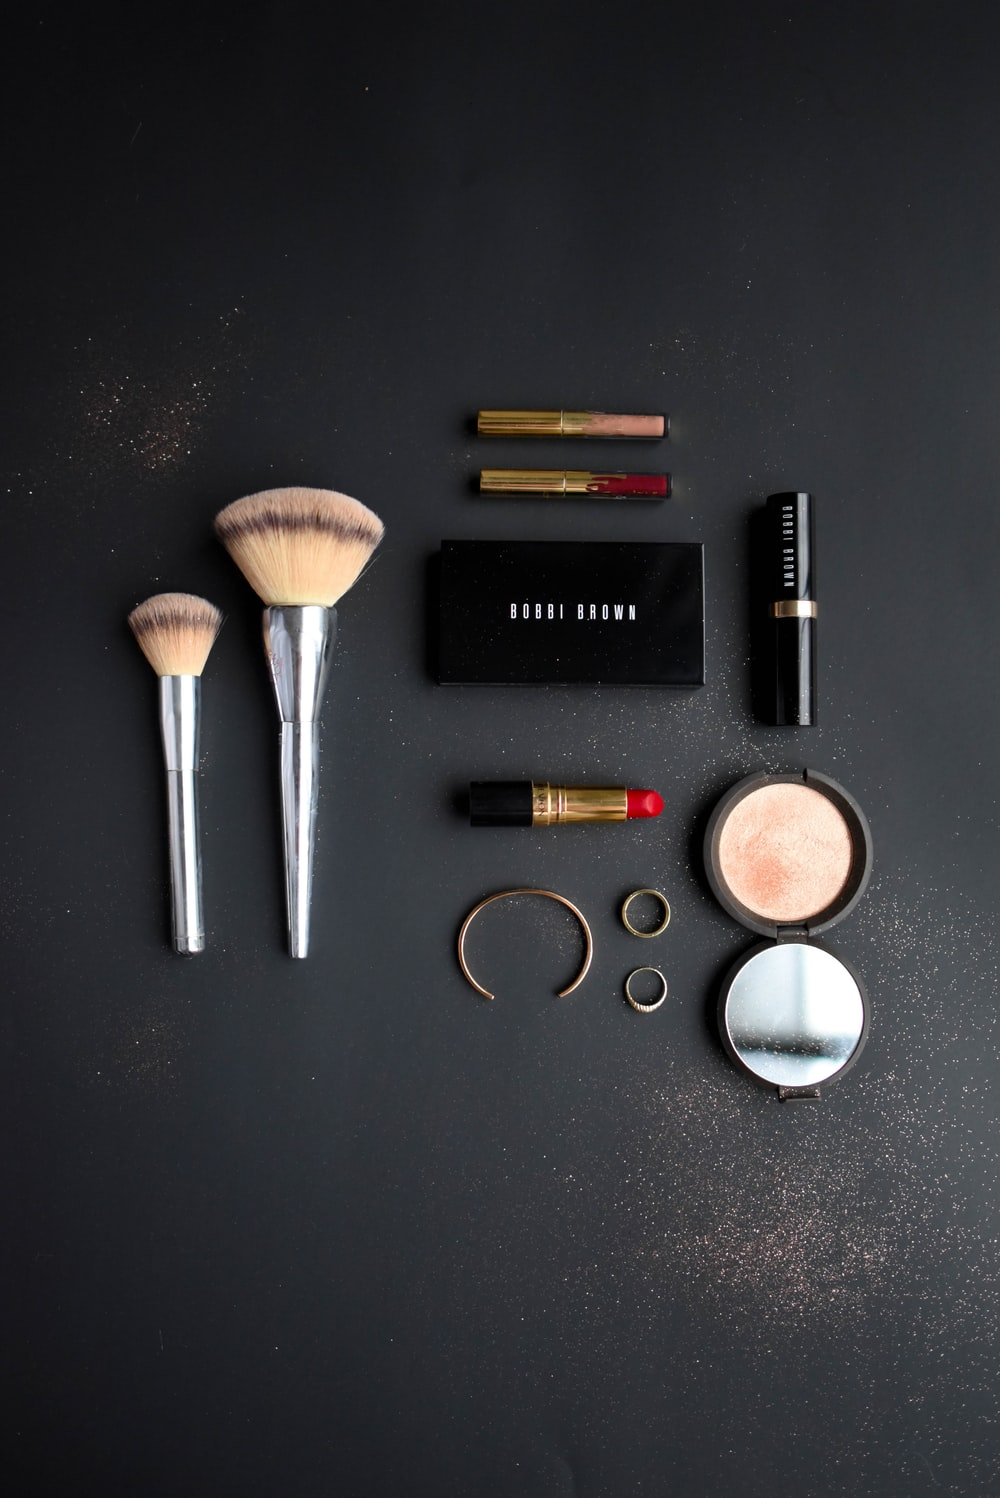 100 Cosmetics Pictures Download Free Images On Unsplash